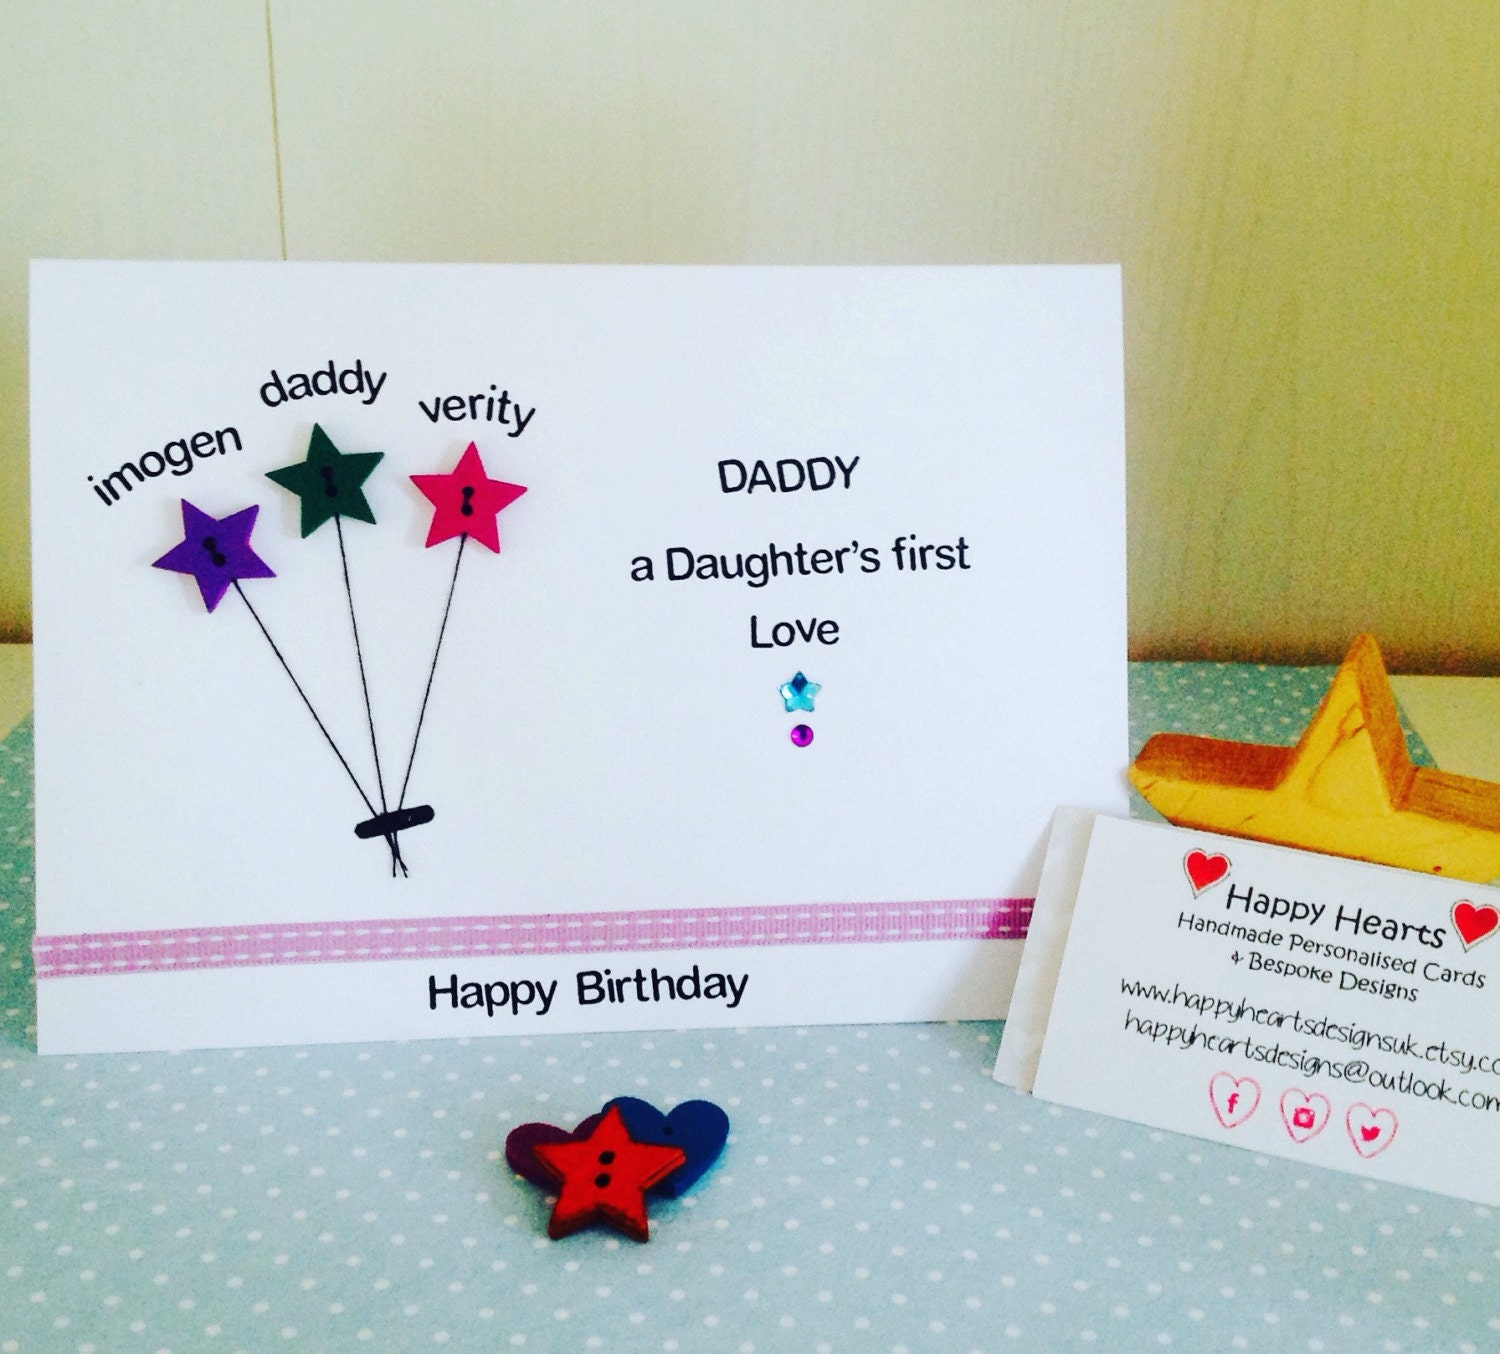 Birthday Card For Daddy – gangcraft